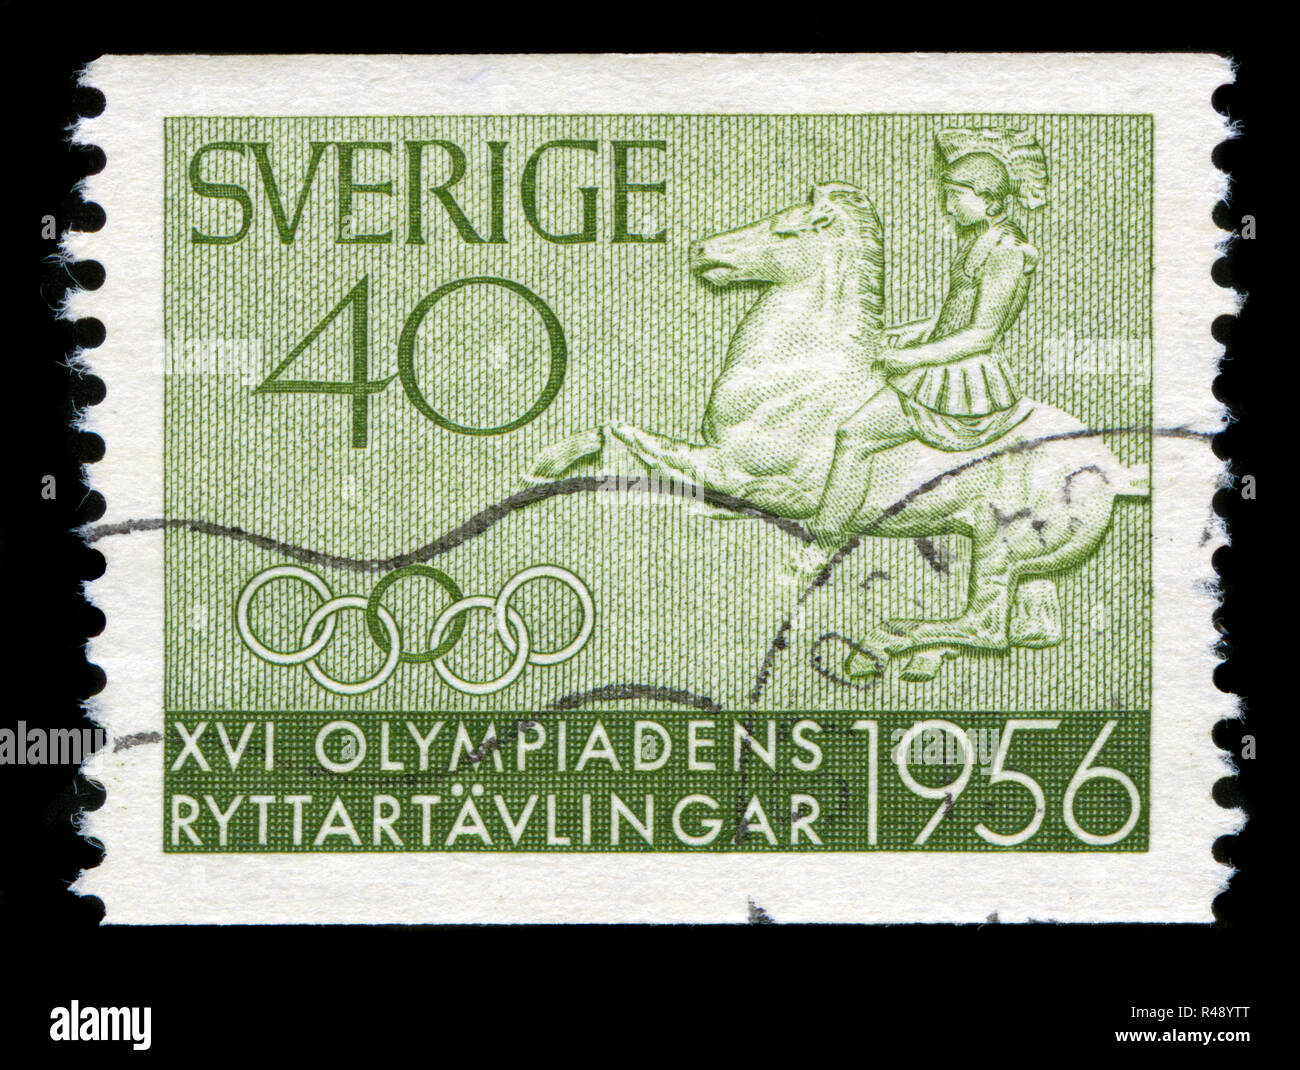 Postage stamp from Sweden in the Equestrian Olympics series issued in 1956 - Stock Image